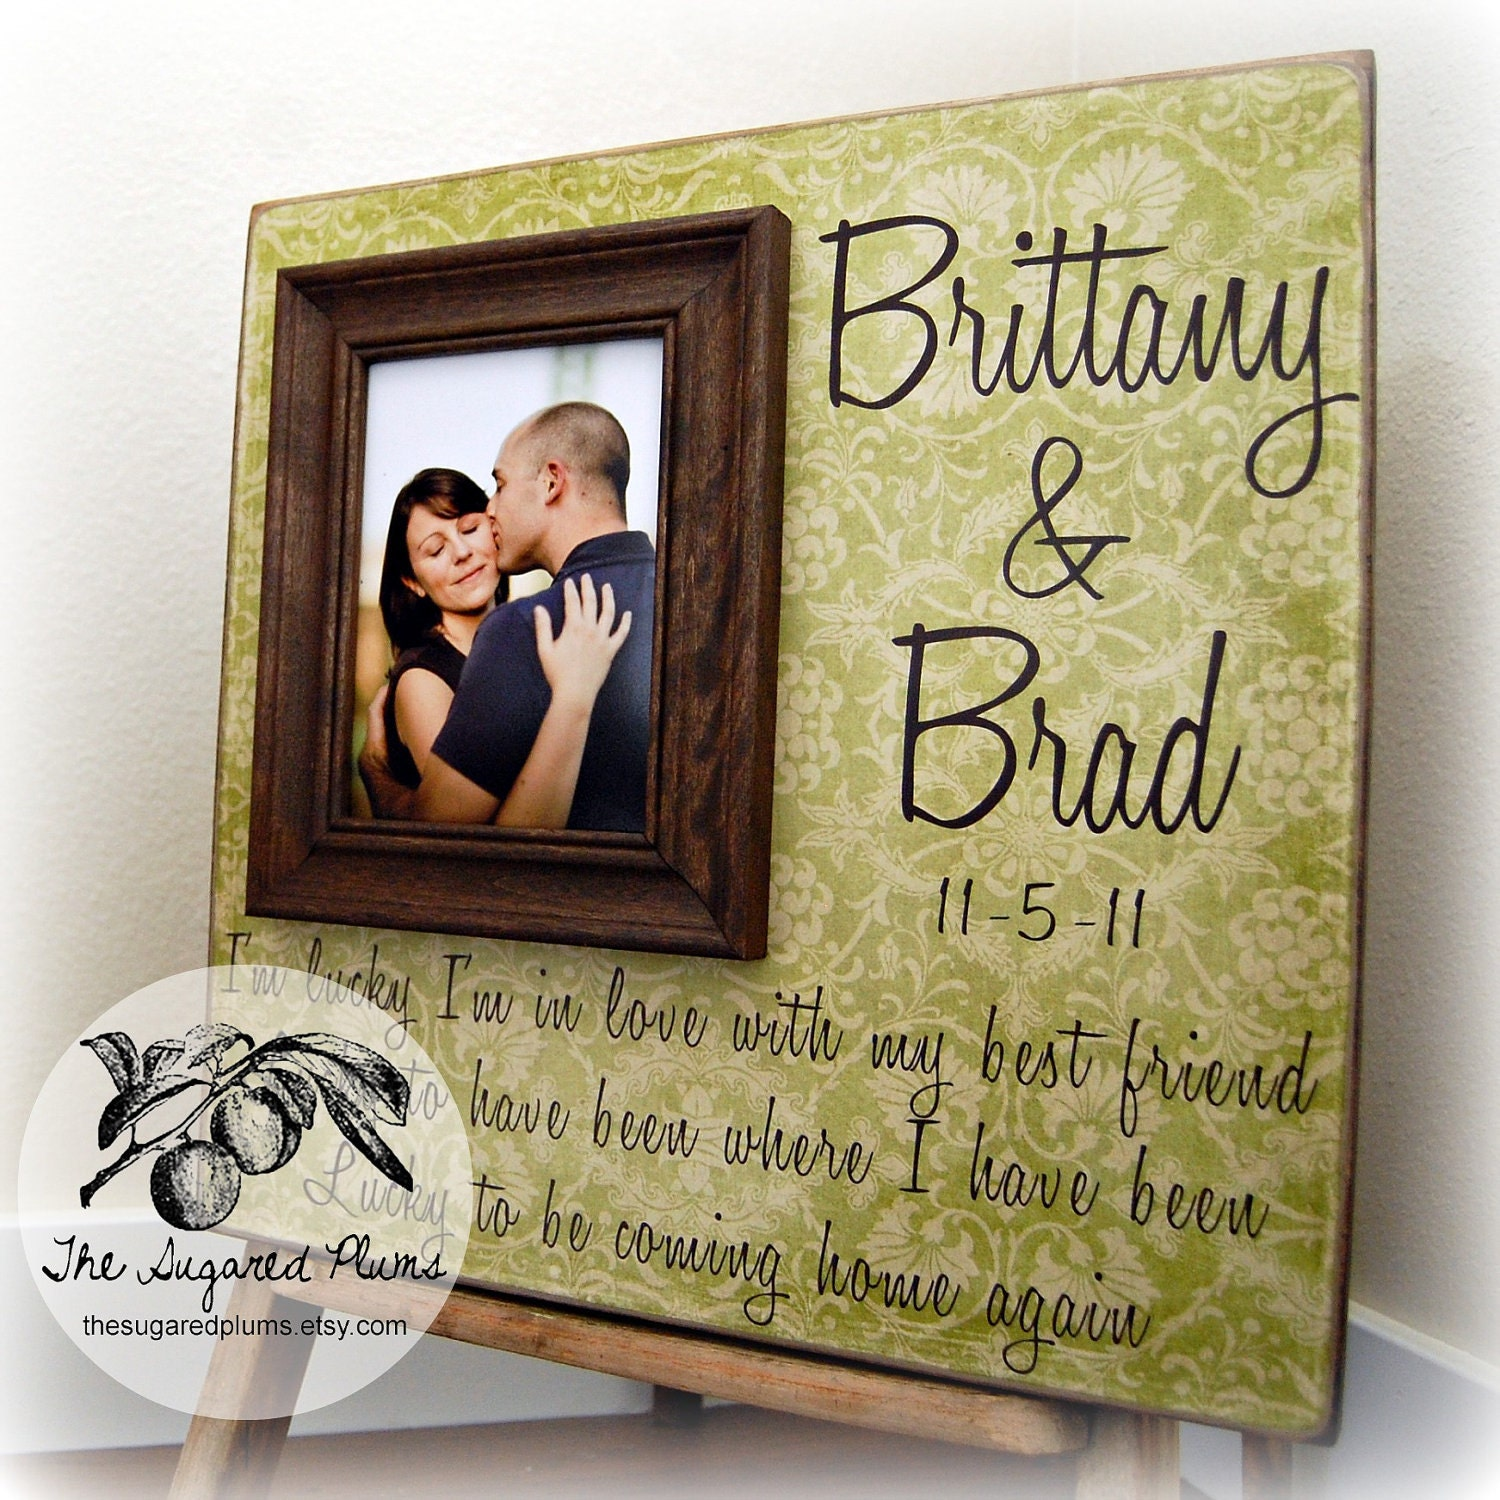 Personalised Wedding Gift Portrait : Personalized Picture Frame Wedding Gift Custom 16x16 Anniversary Love ...